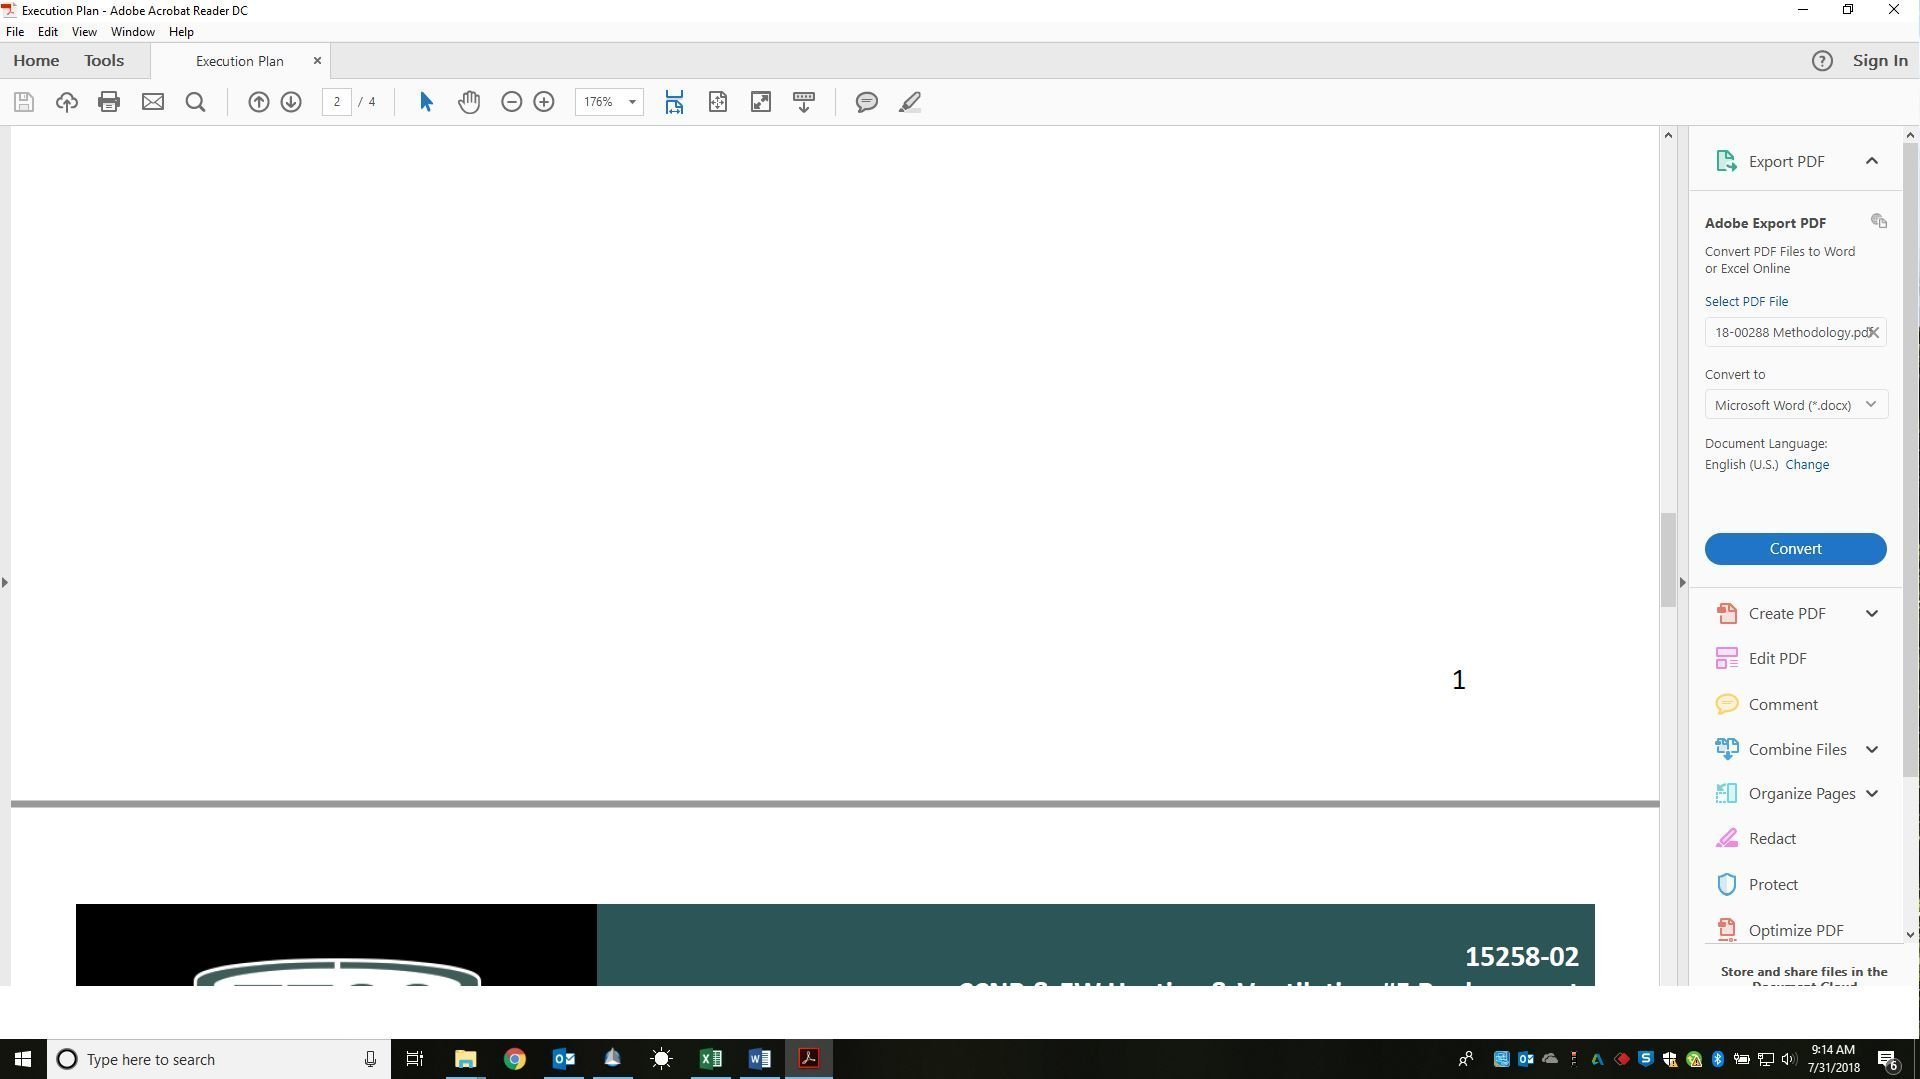 Bottom section of maximized window is blank